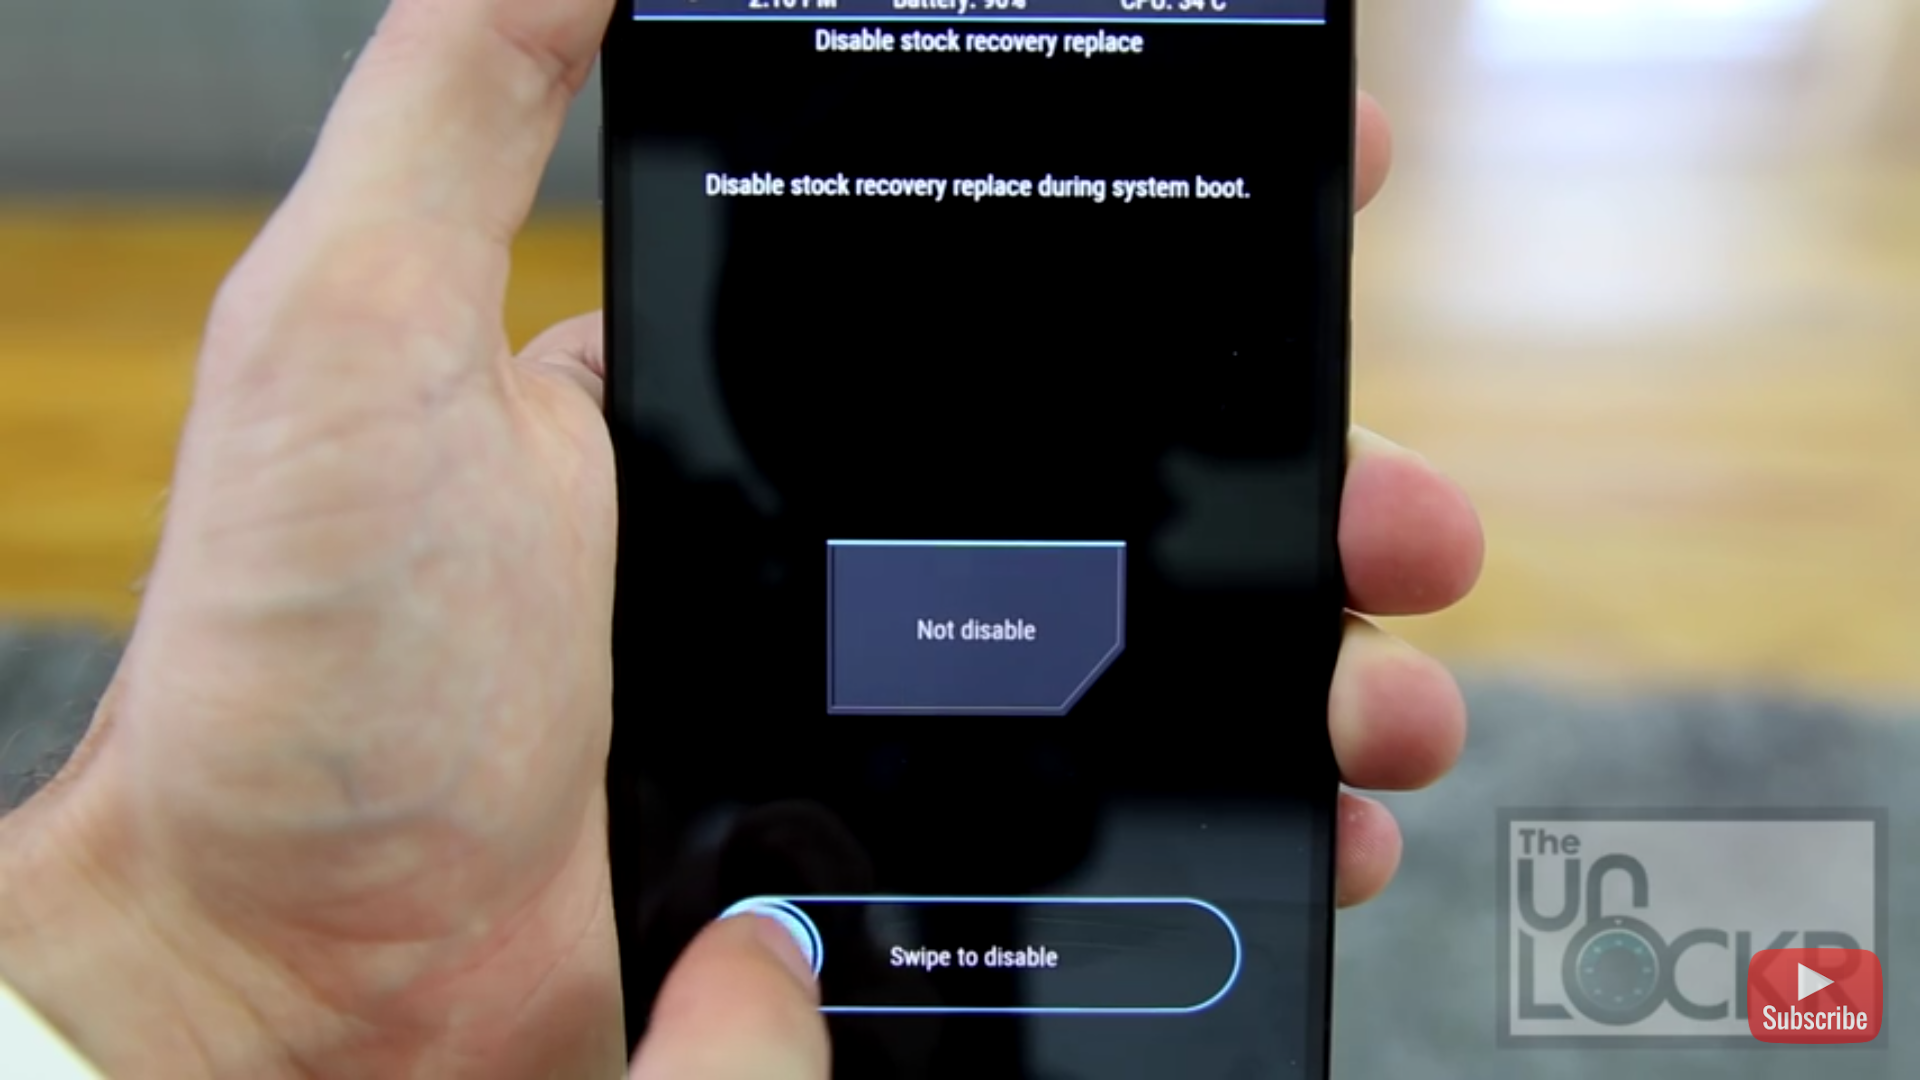 GUIDE] OnePlus 3: How to Unlock Bootloader, Flash TWRP, Root